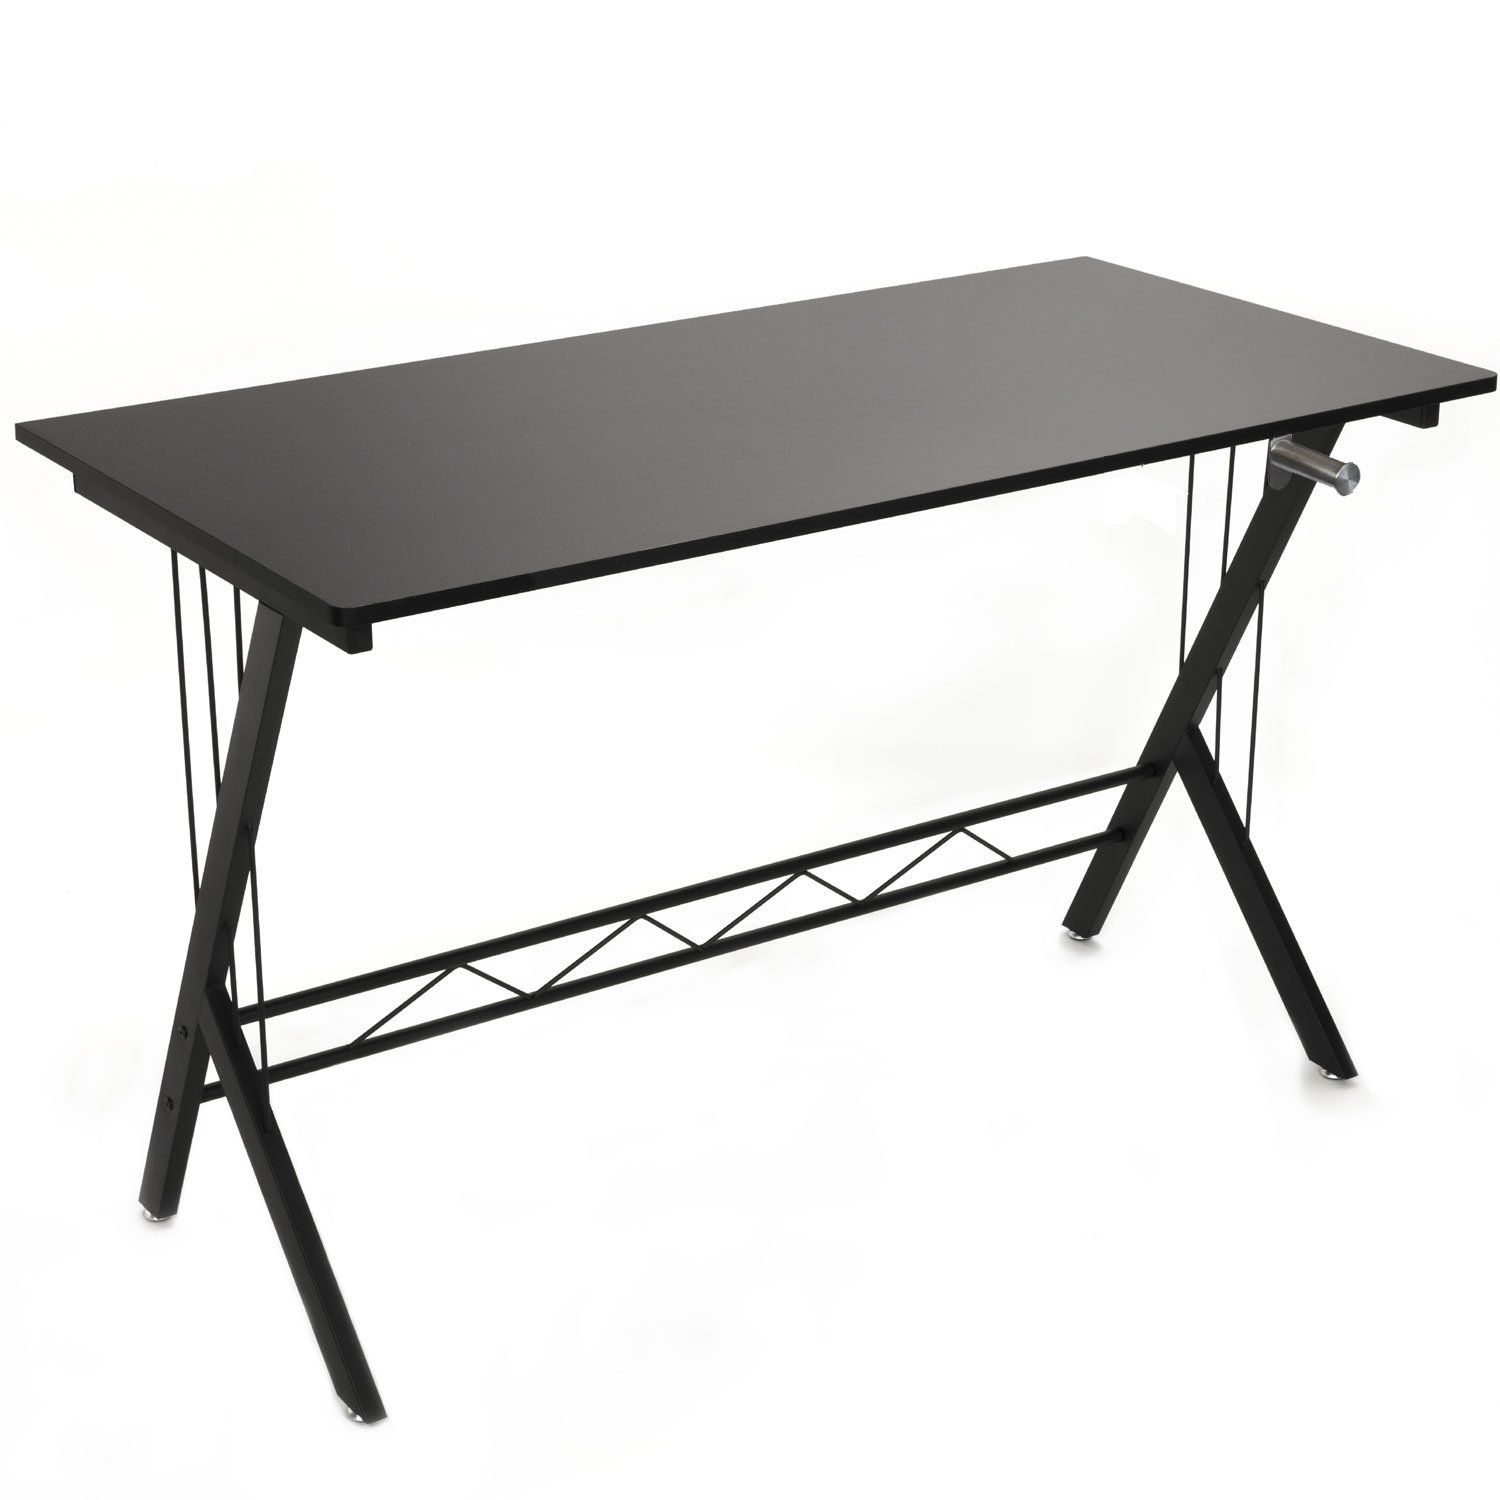 Gaming Desk Table Durable Workstation for Kids Room ,Home Office , Dorm Room , Black With Headphone Holder (Black With Headphone Holder)